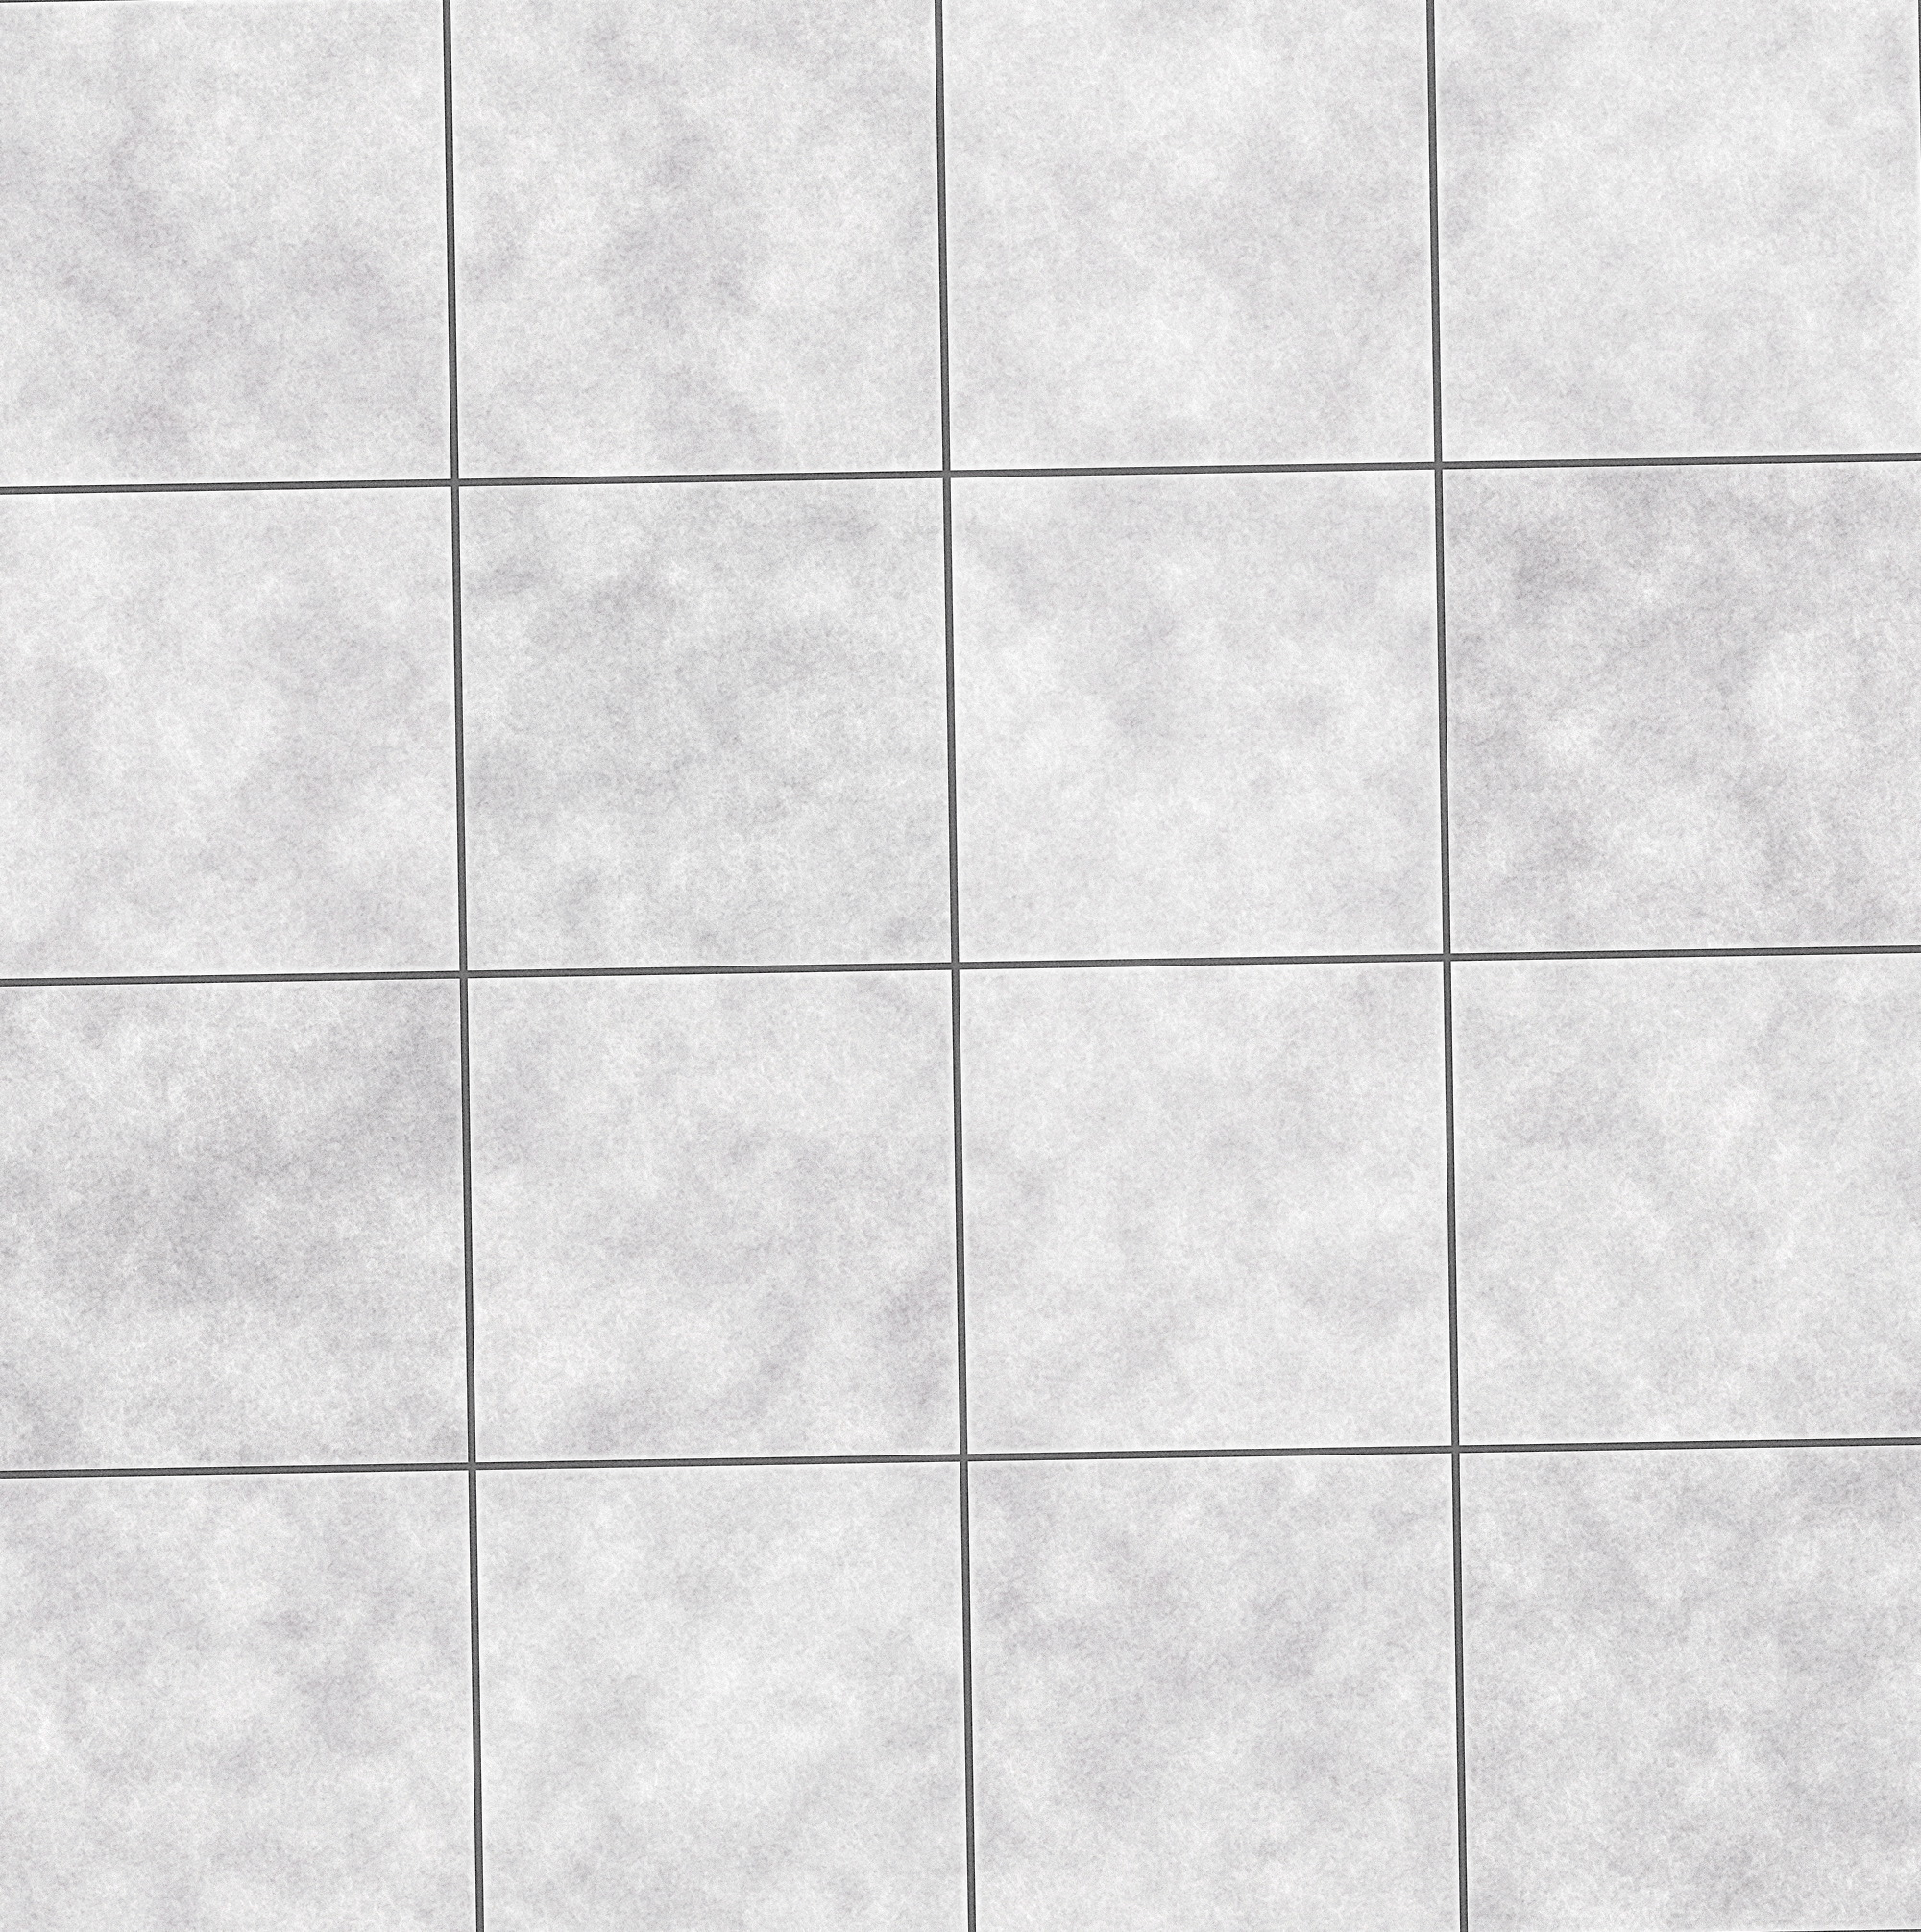 Bathroom Floor Tiles Texture White